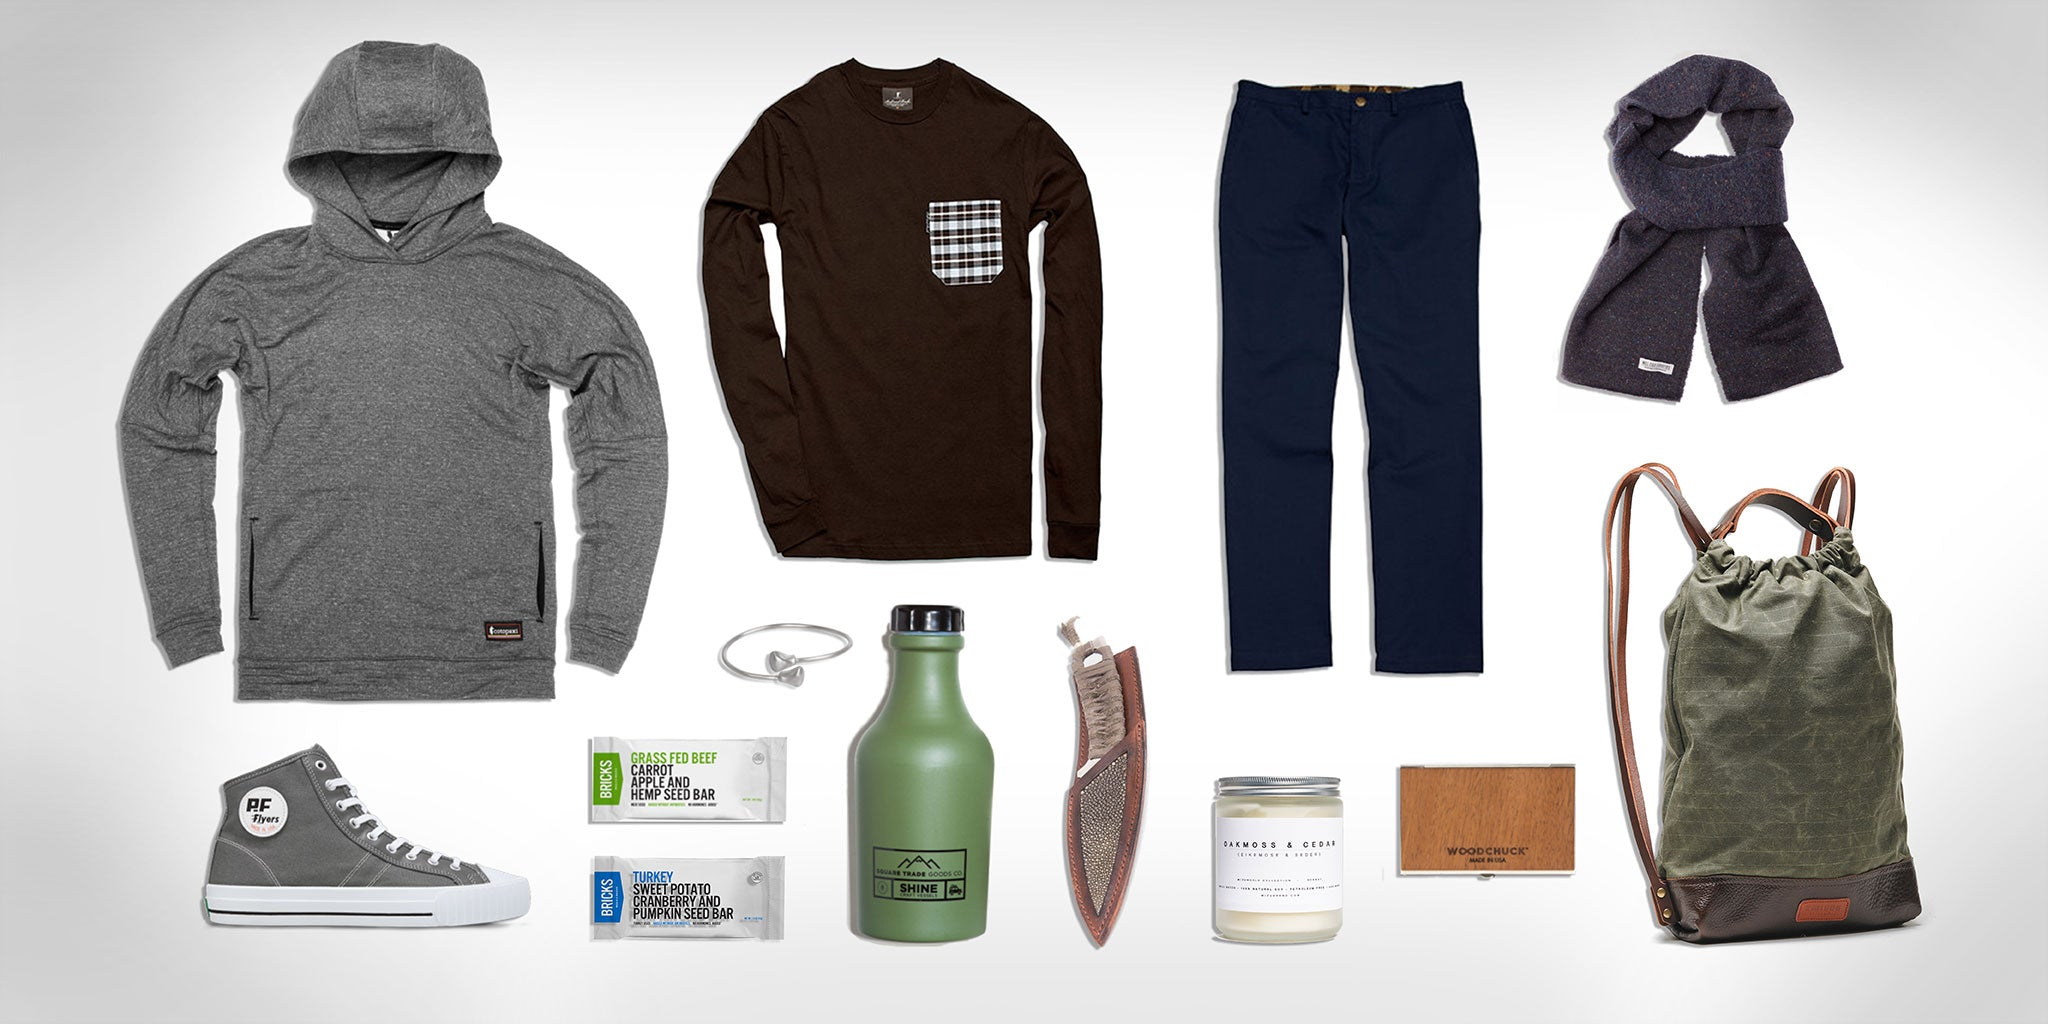 Leisure Explorer Gift Guide by American Field